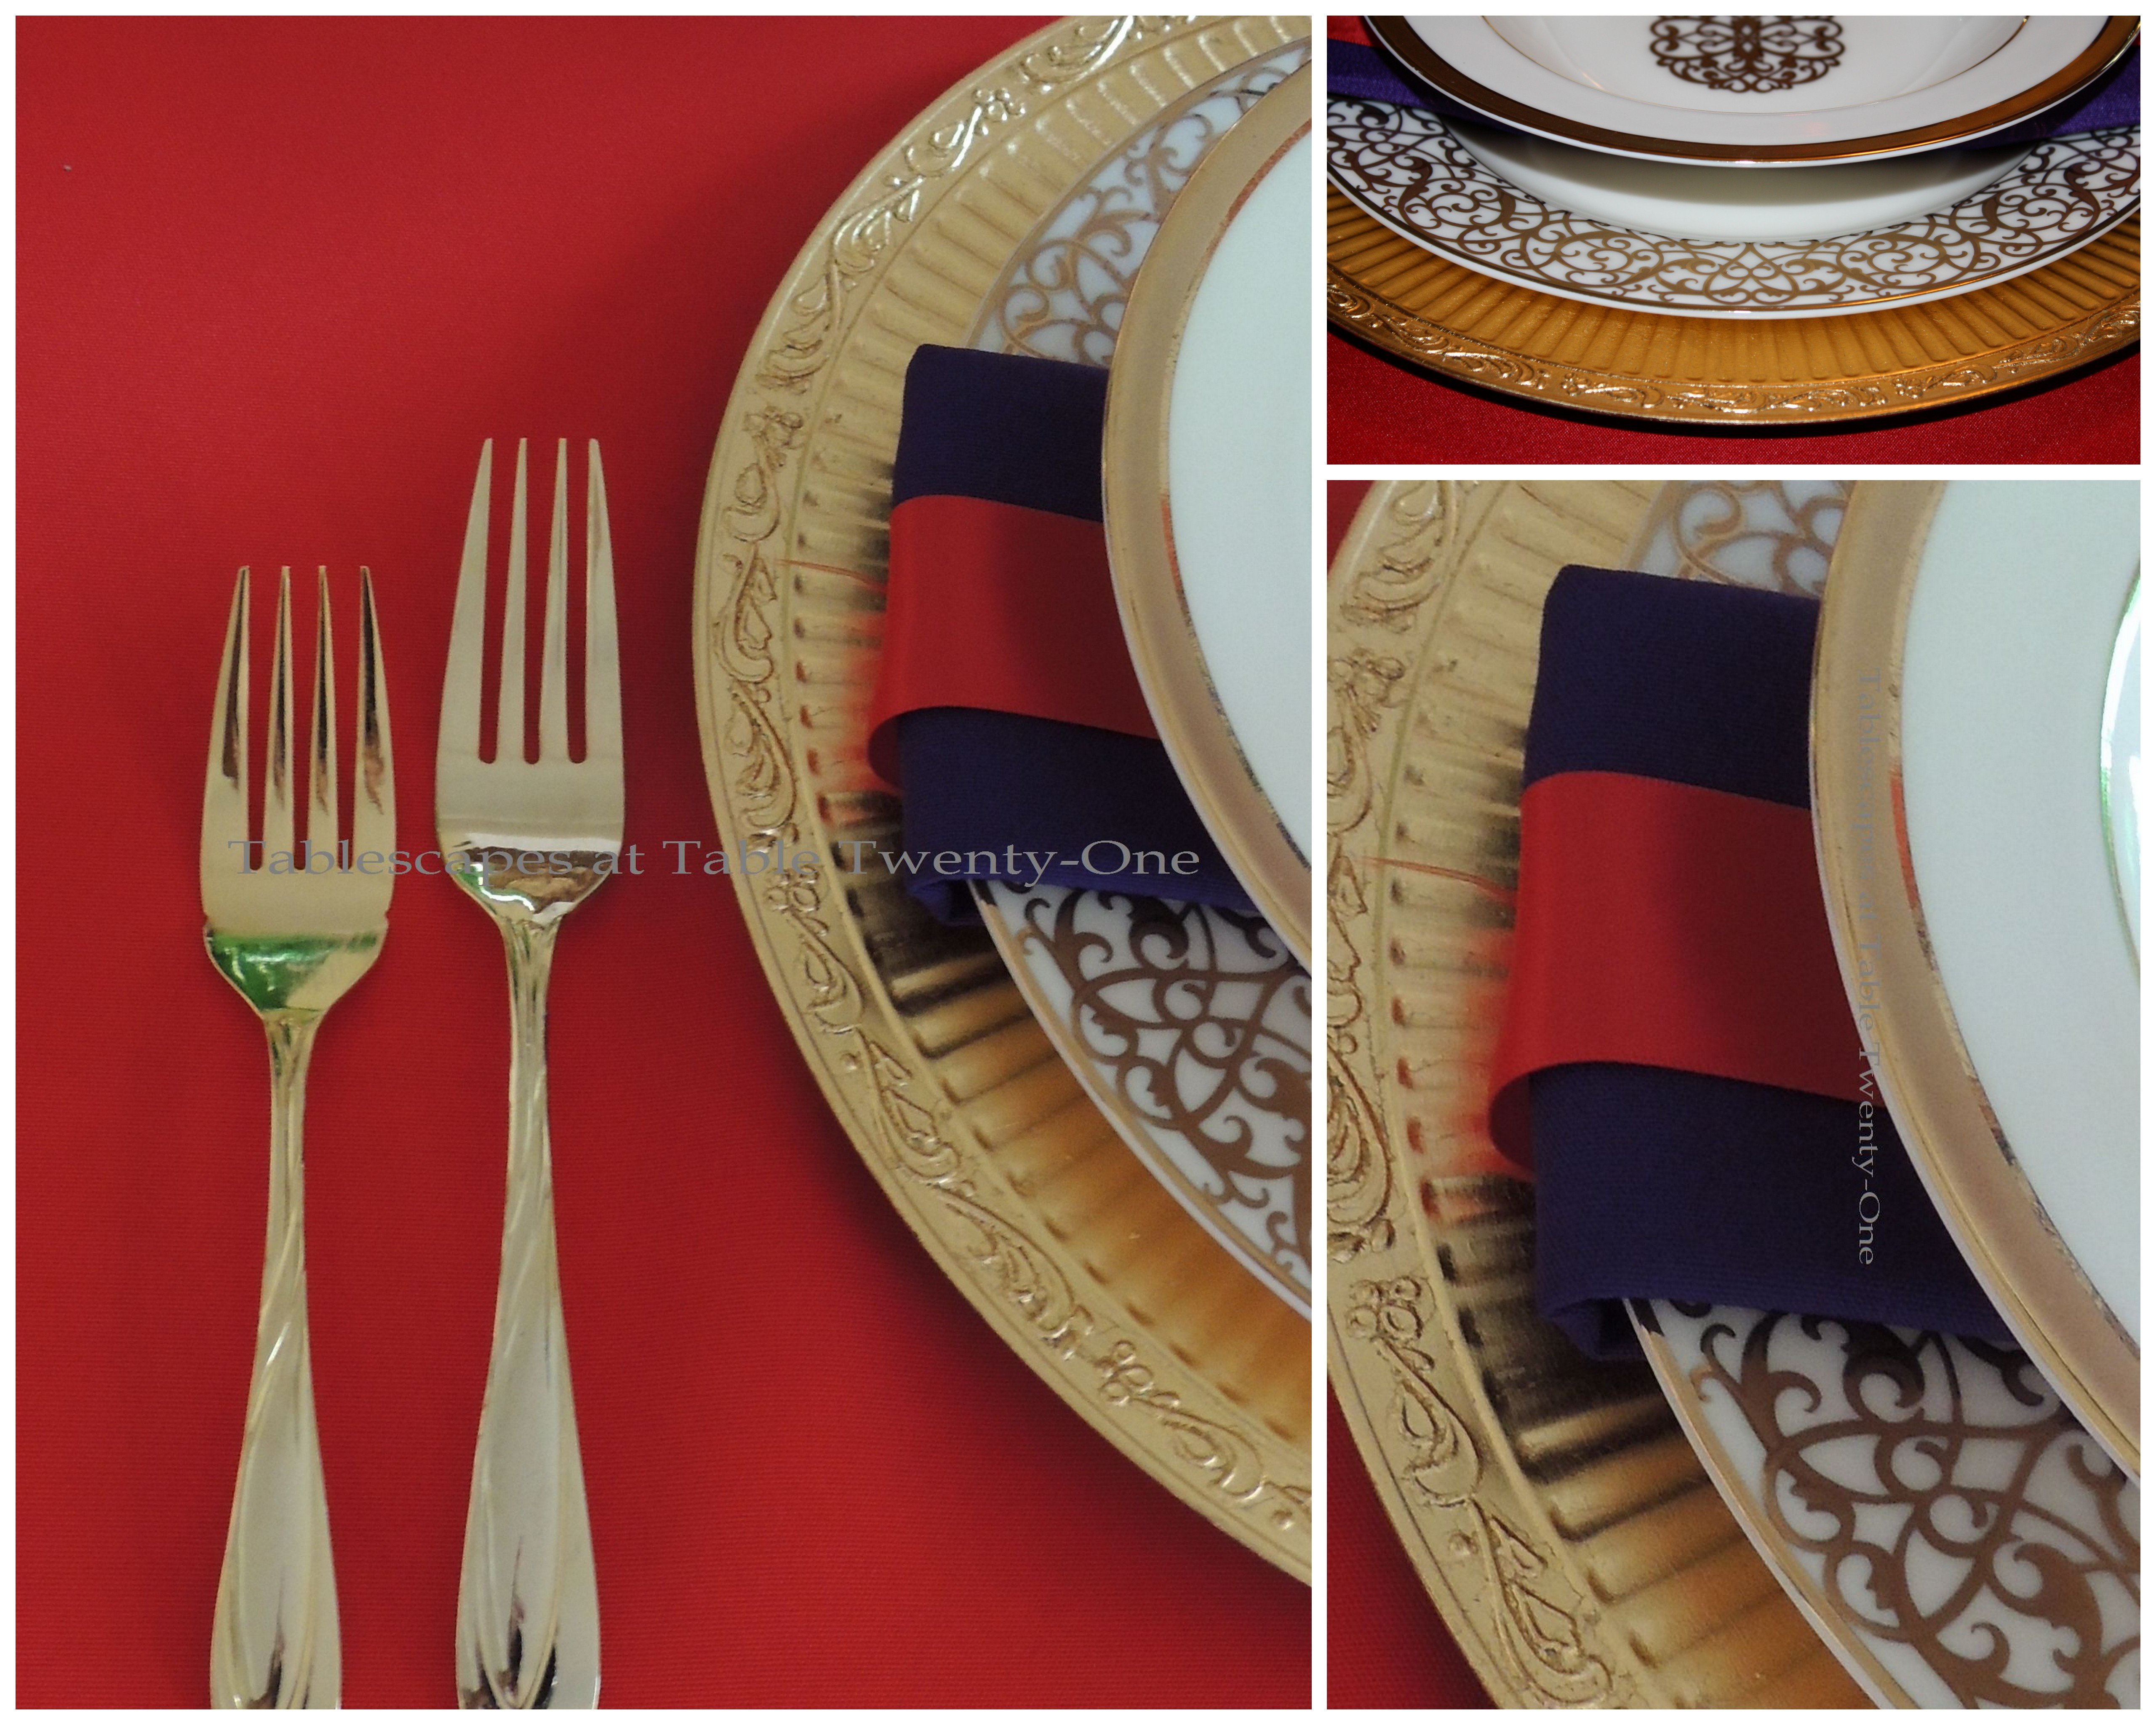 Tablescapes at Table Twenty-One, Merry & Bright Multi-Color Christmas: china rim shot, flatware, napkin treatment